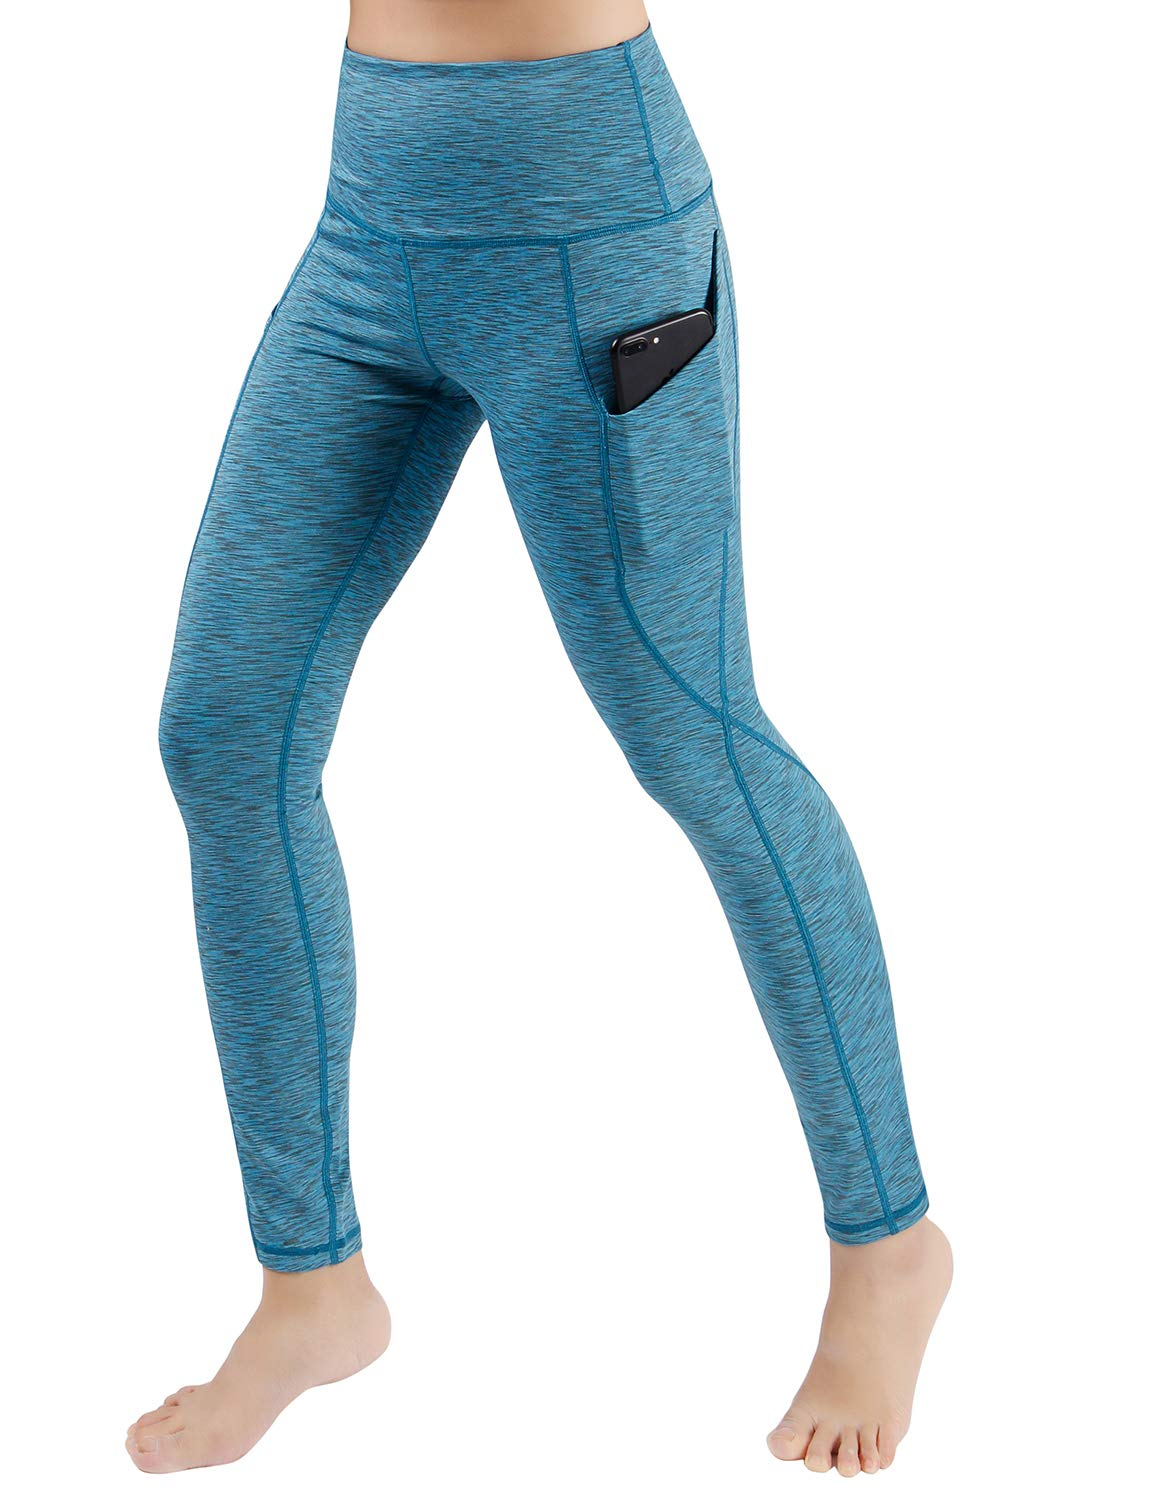 ODODOS Women's High Waist Yoga Pants with Pockets,Tummy Control,Workout Pants Running 4 Way Stretch Yoga Leggings with Pockets,SpaceDyeBlue,Small by ODODOS